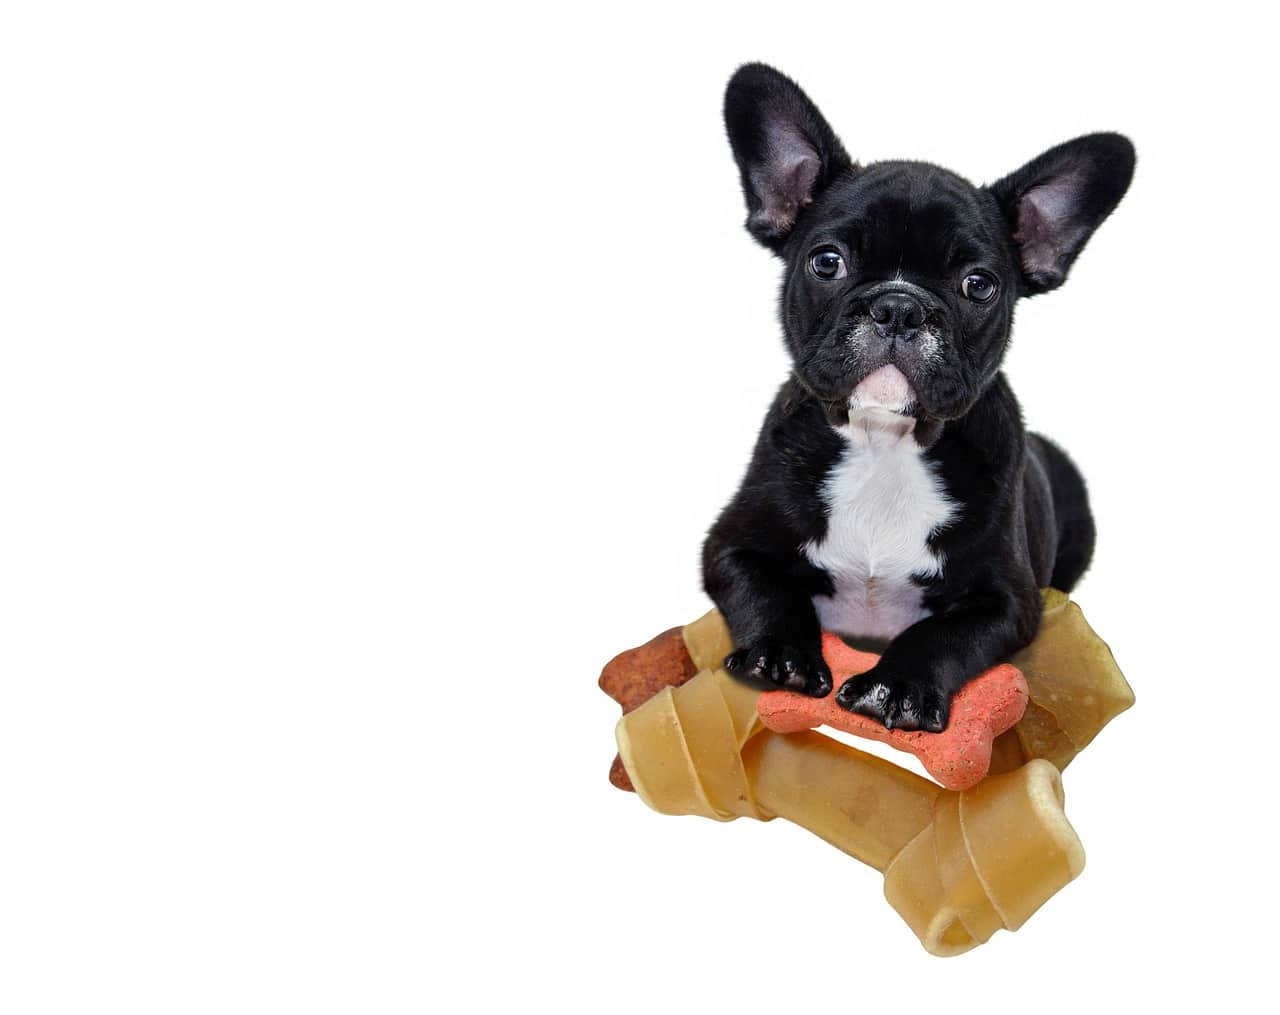 Newborn French Bulldog Gets Her Own Photo Shoot